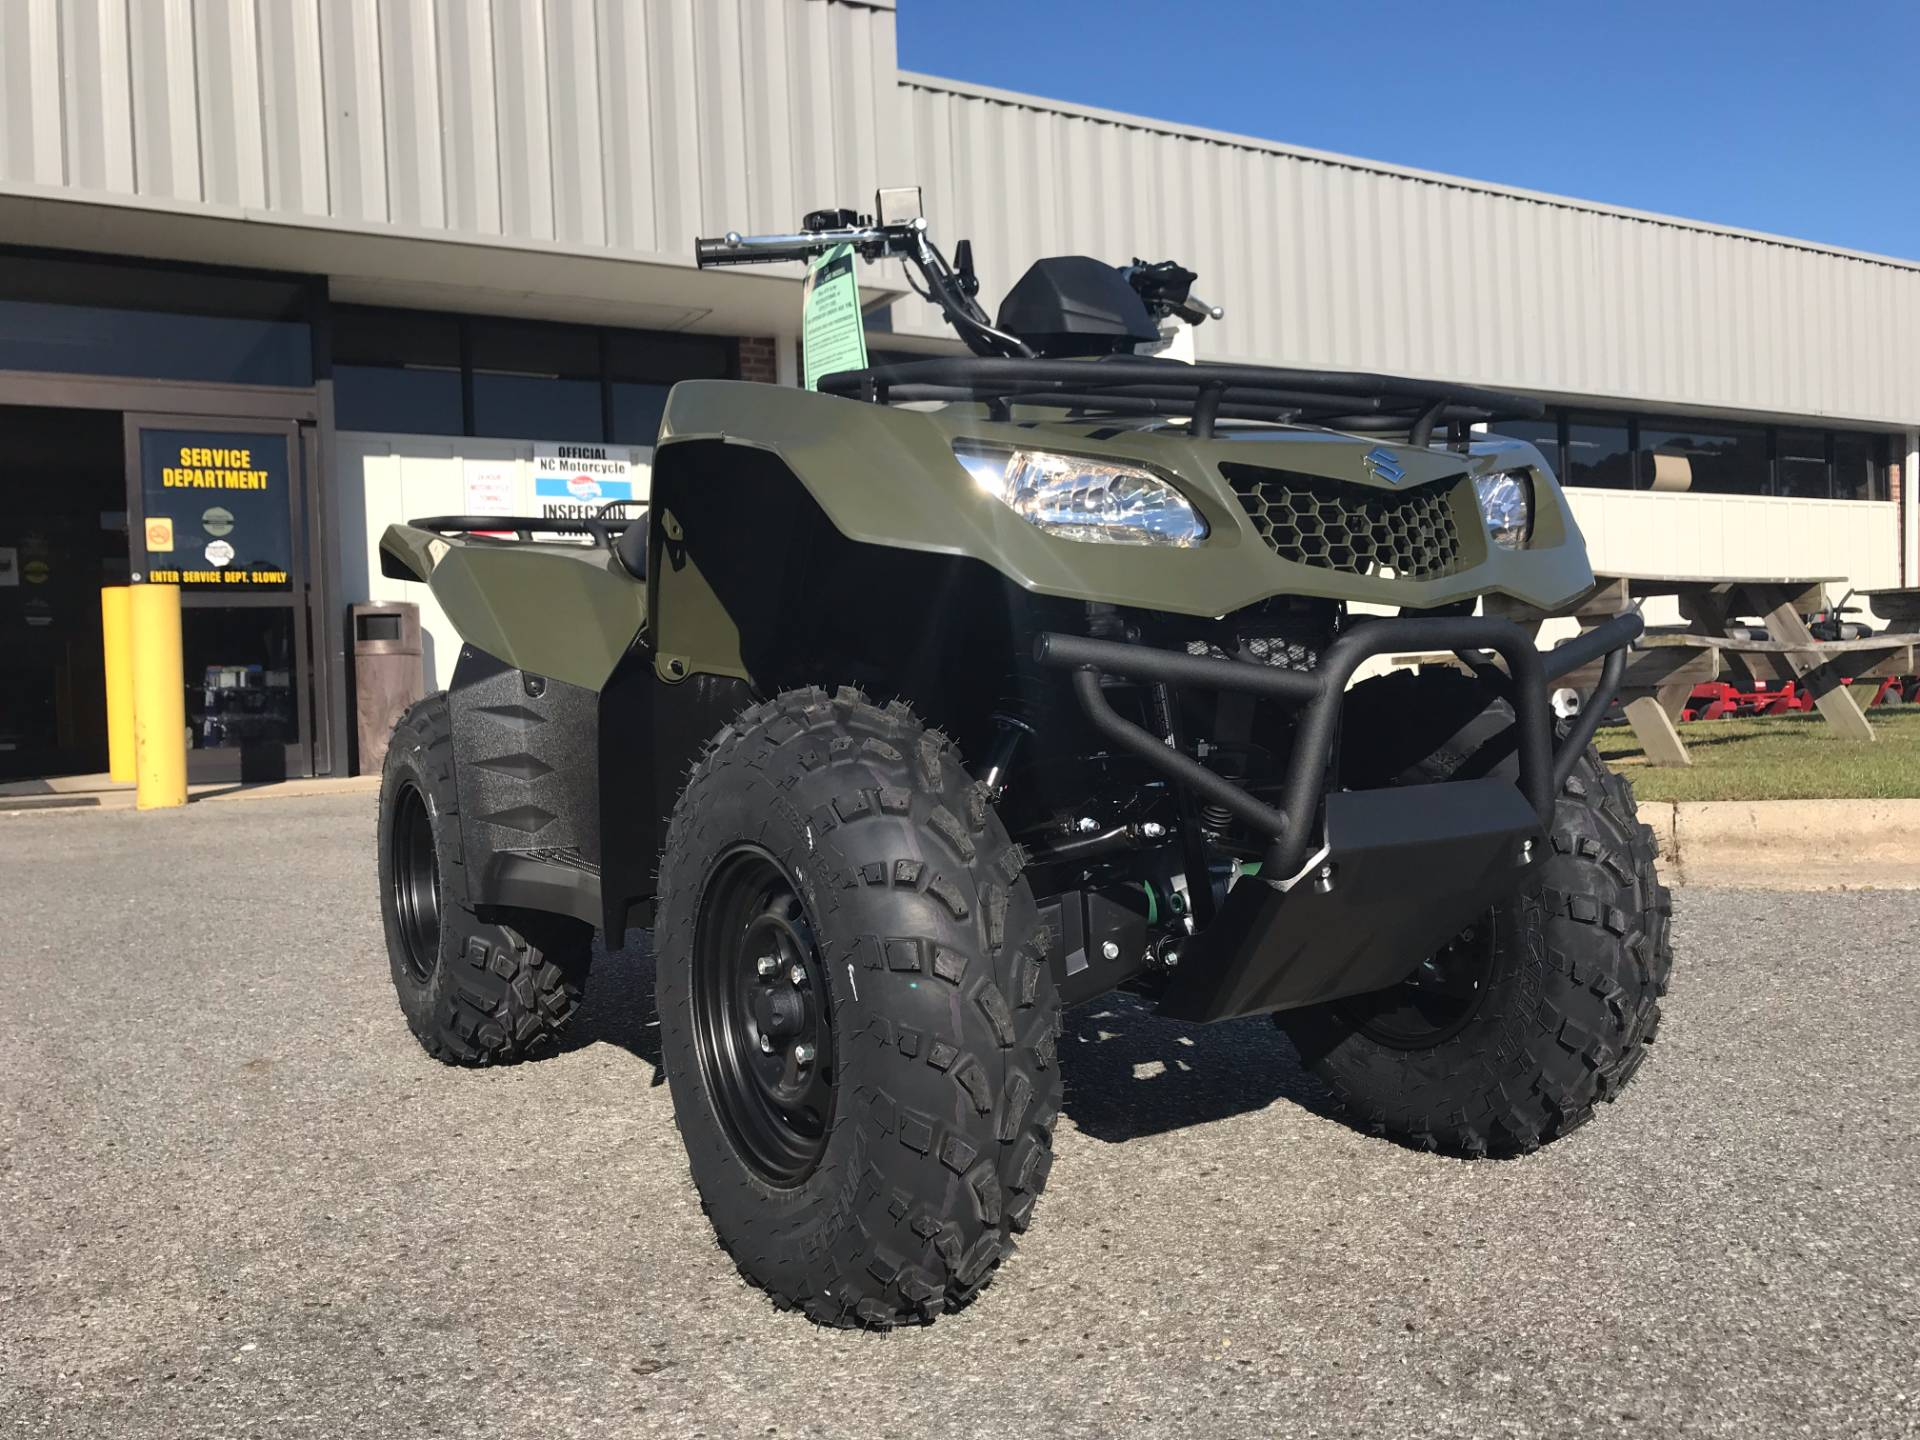 2018 Suzuki KingQuad 400ASi in Greenville, North Carolina - Photo 3